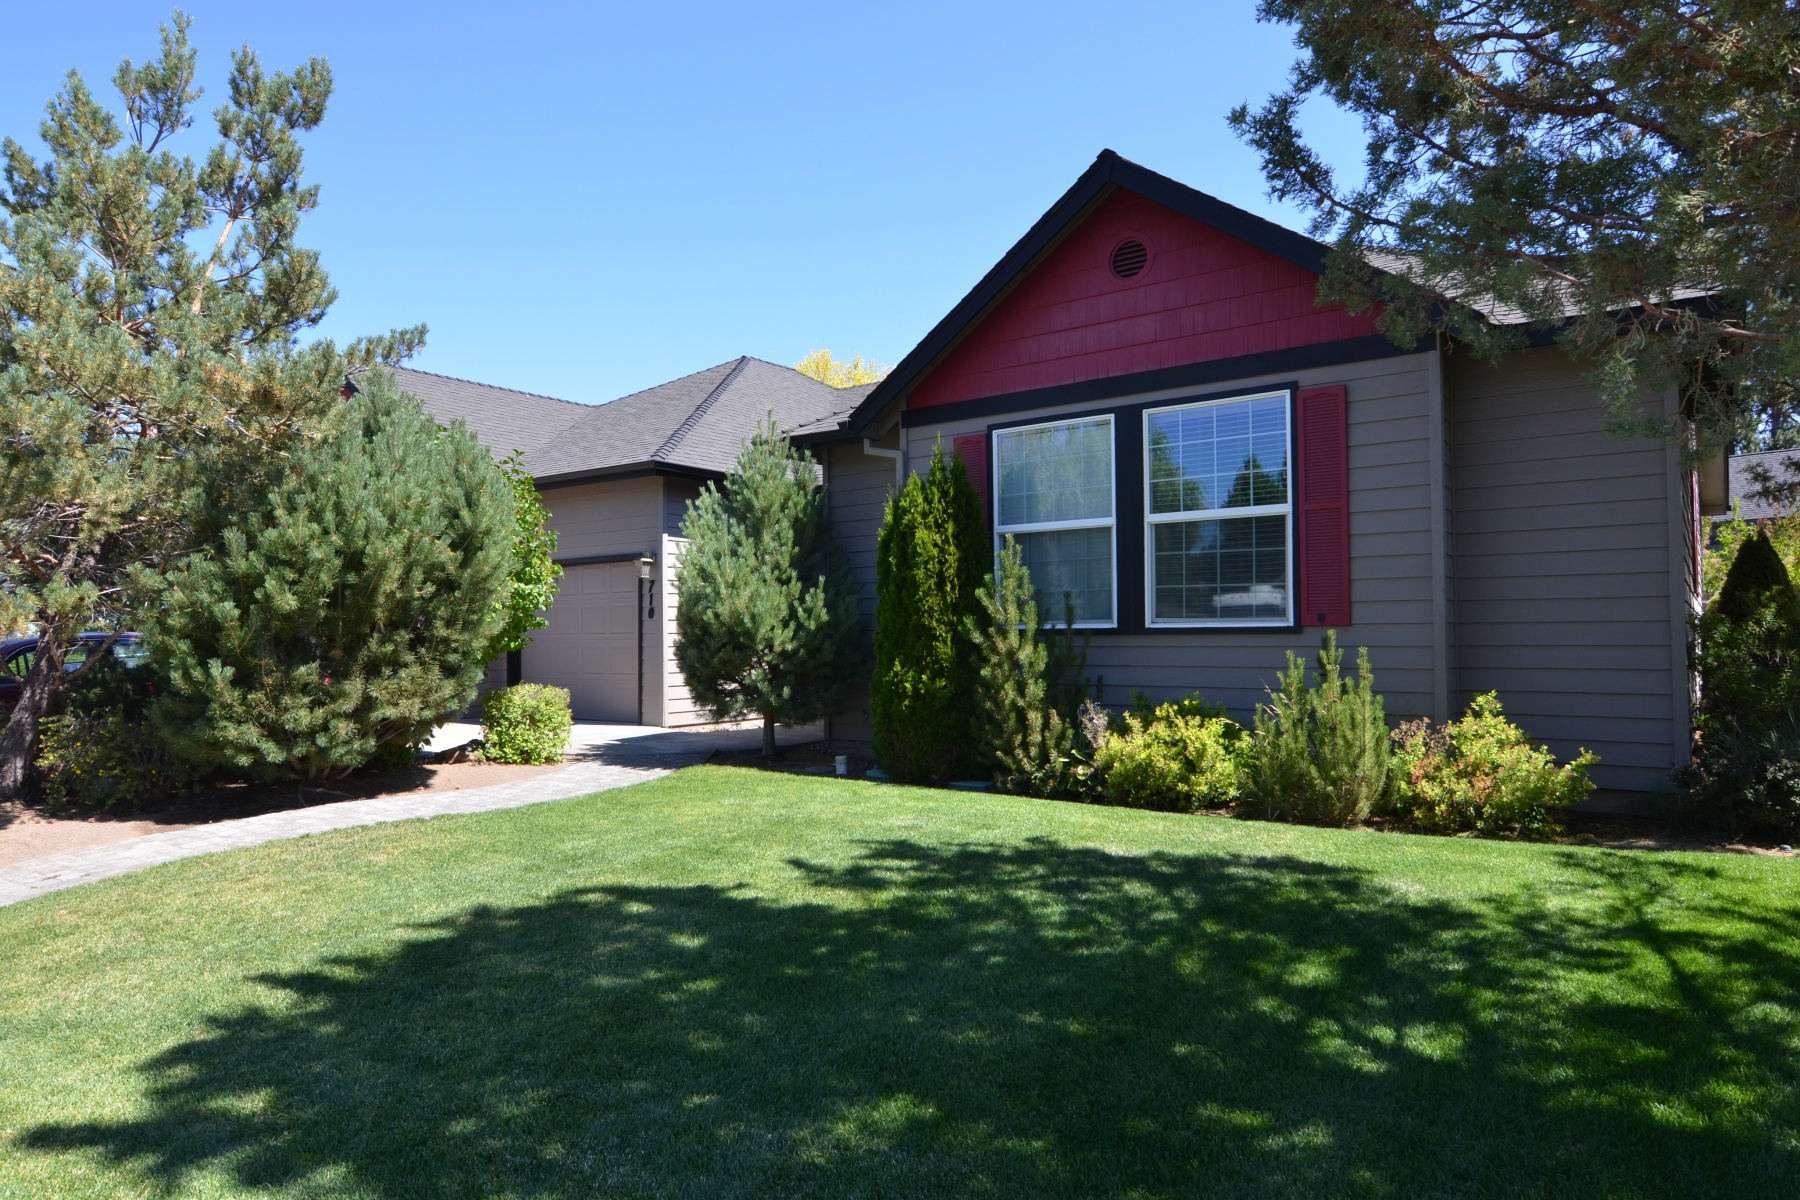 Single Family Home for Sale at 710 SE Shadowood Drive, BEND Bend, Oregon, 97702 United States